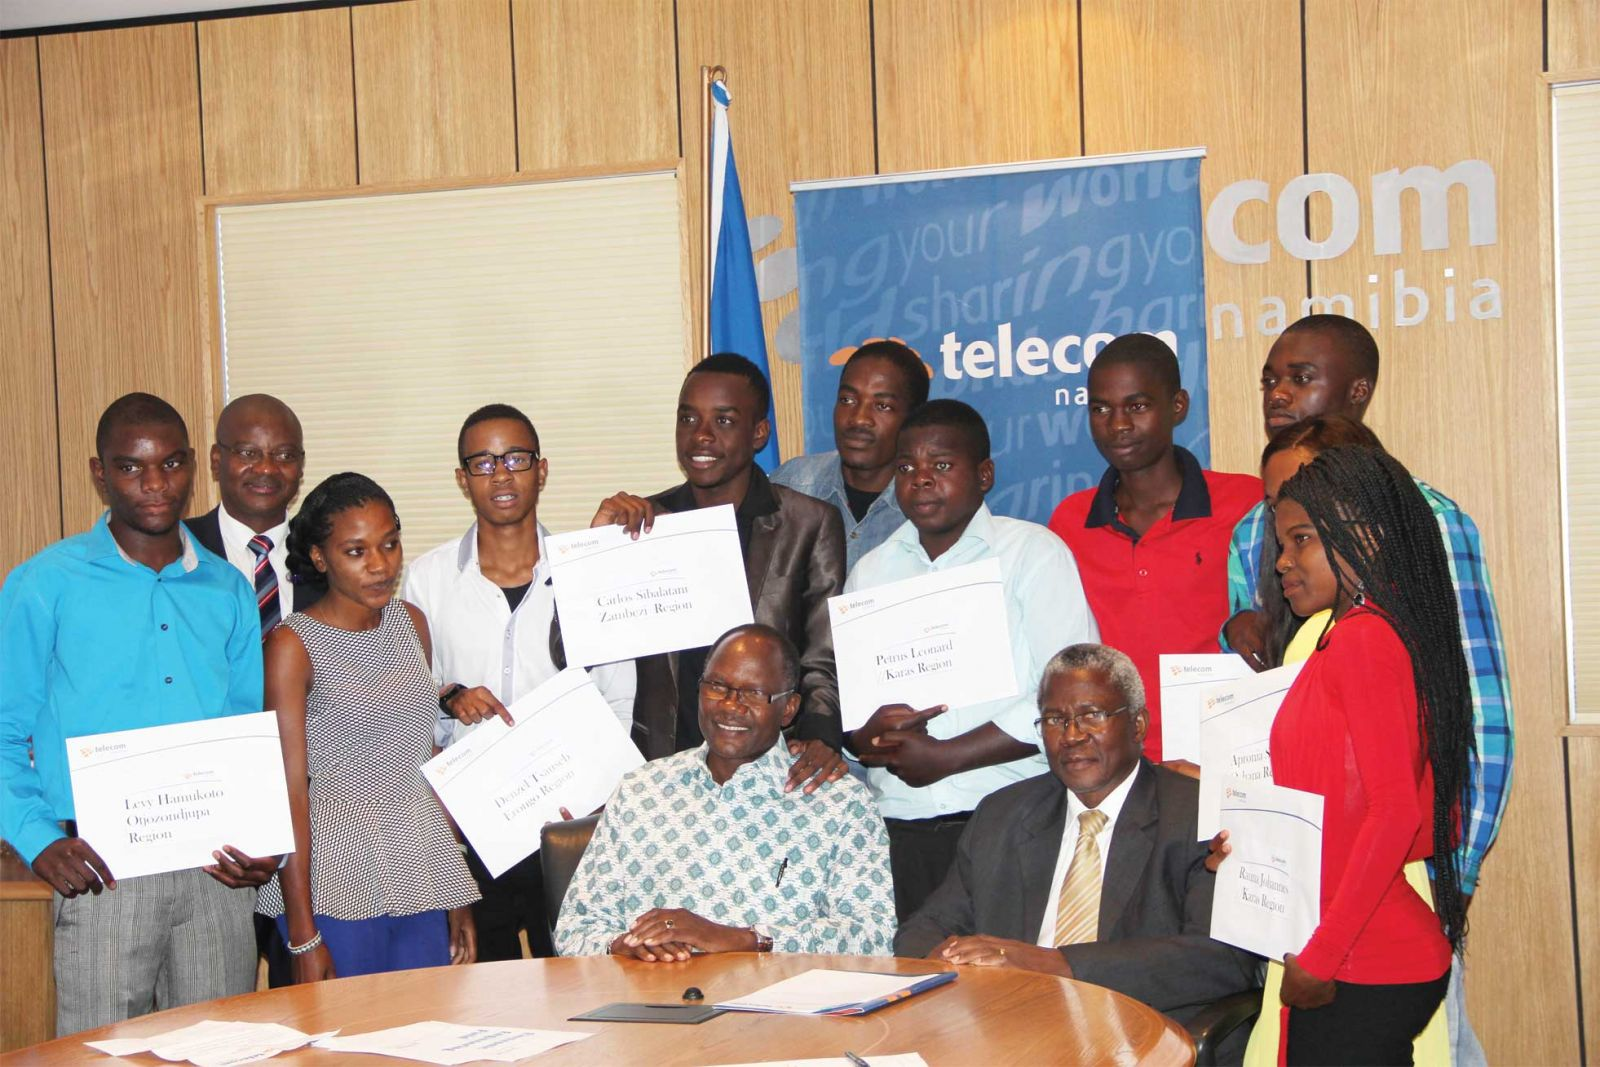 Telecom Namibia bursary recipients ecstatic by Honorine Kaze Mon, 27